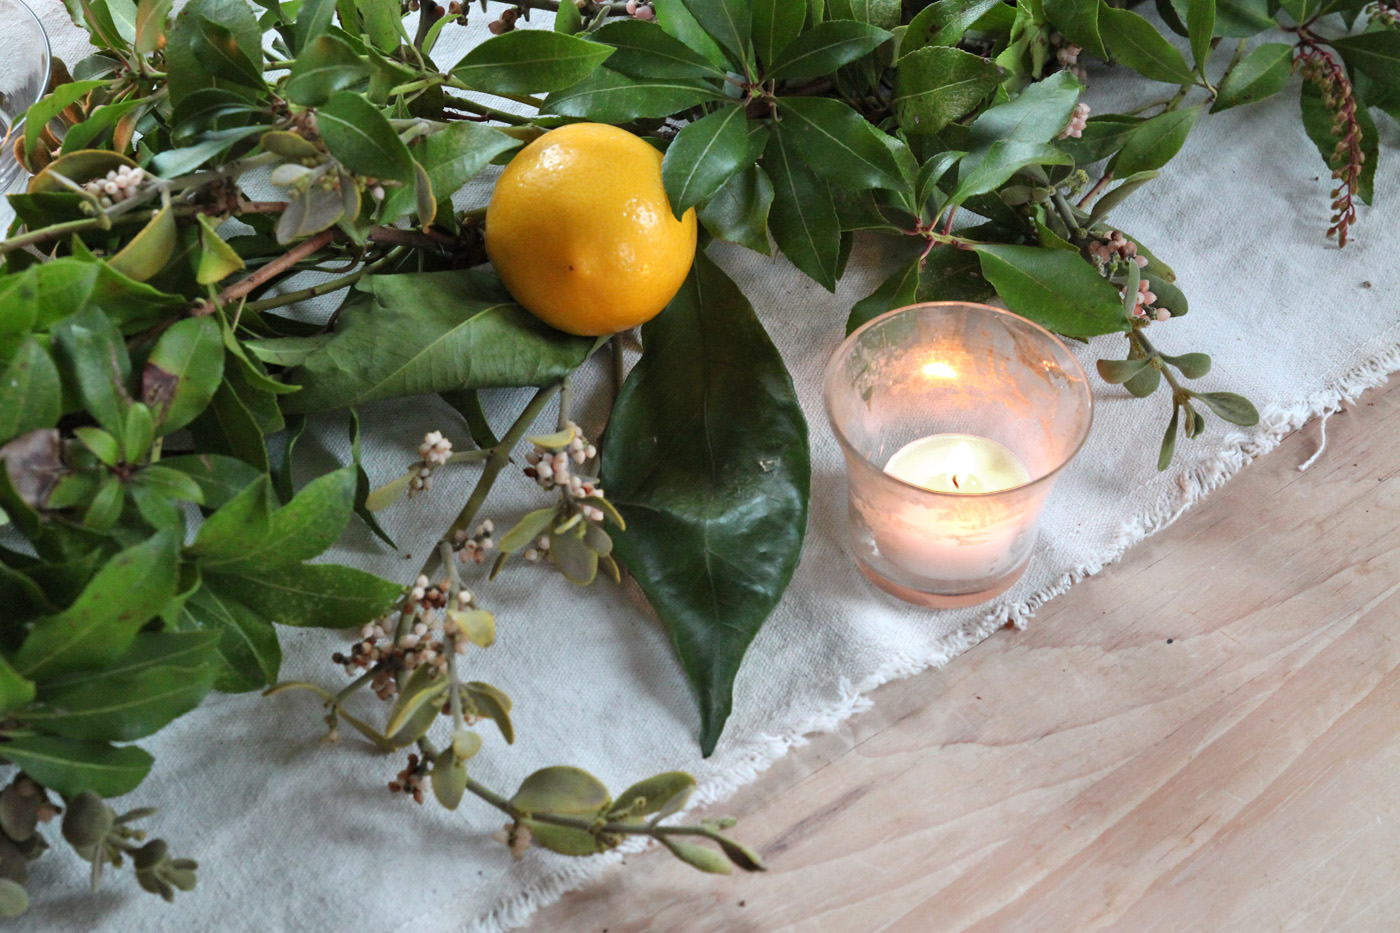 mistletoe meyer lemon garland, finished with candles 3, by Justine Hand for Remodelista